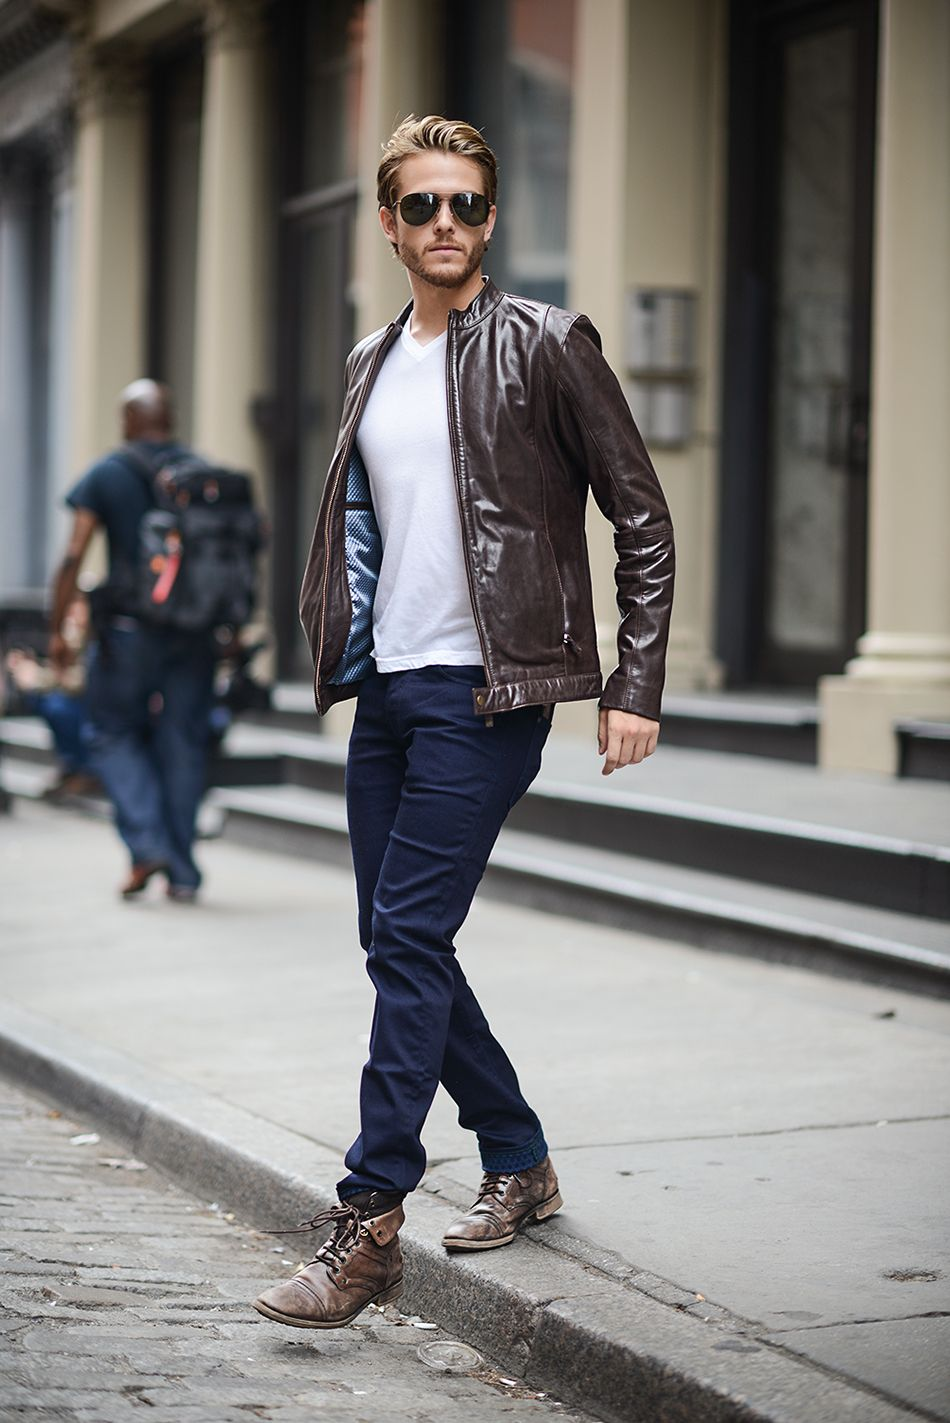 dae3c3d0d5fc99 20 Most Popular Adam Gallagher Outfits Look This Season